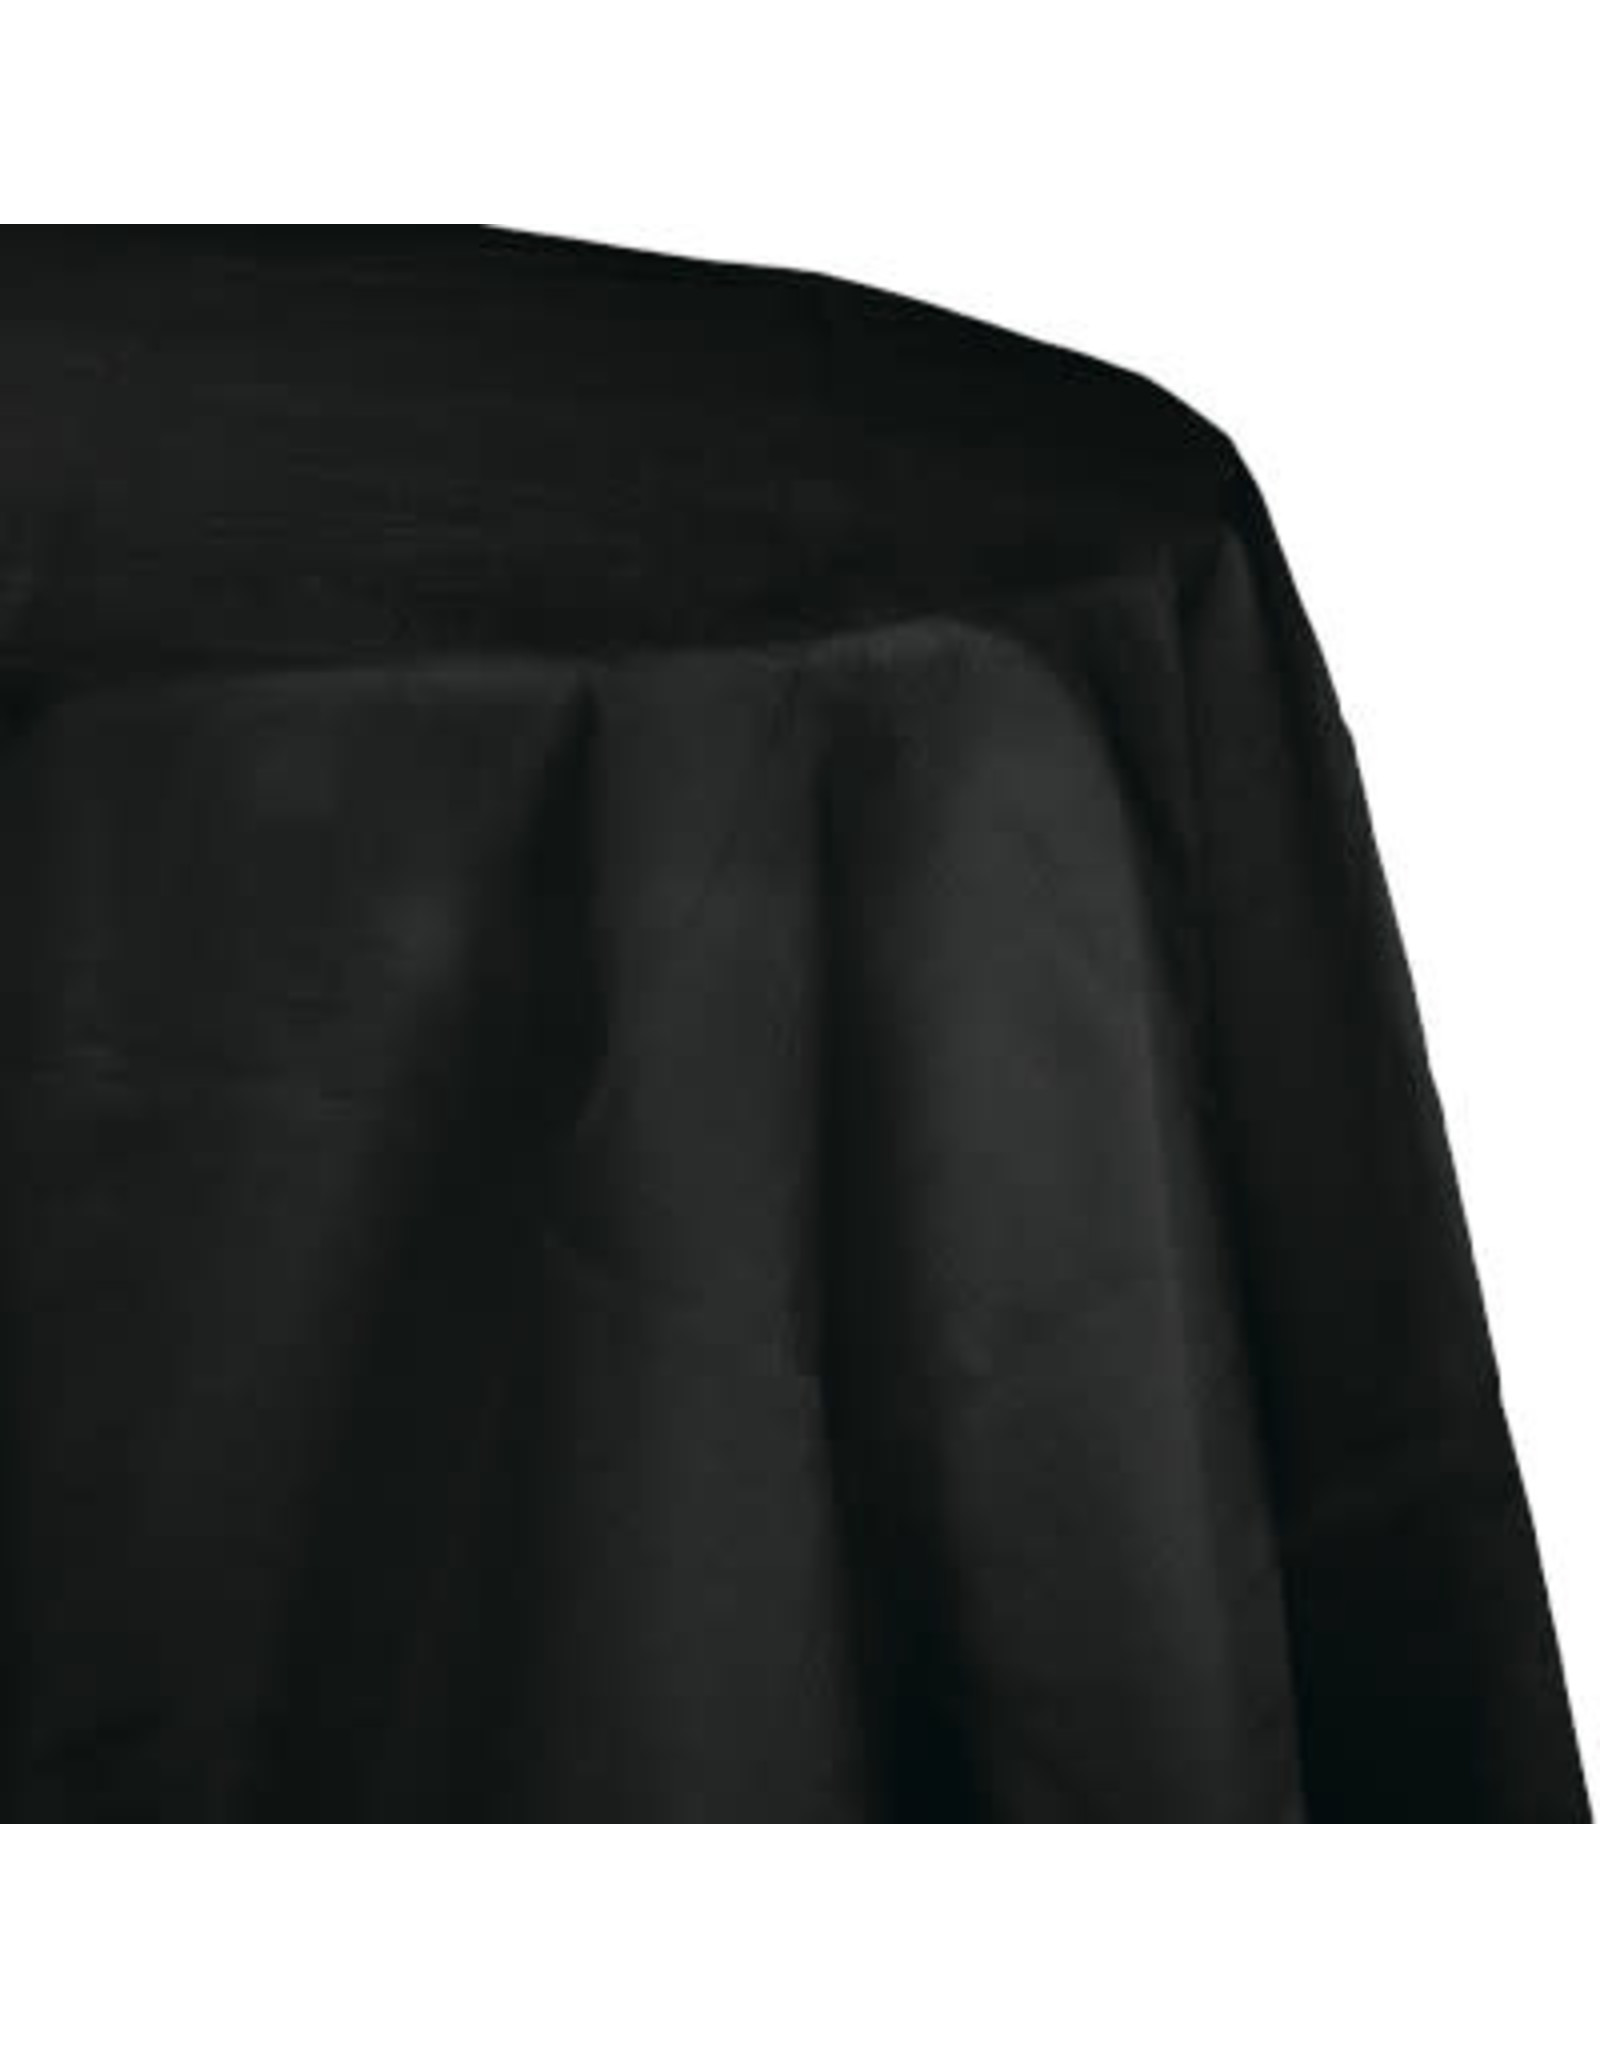 Touch of Color BLACK OCTY ROUND PAPER TABLECLOTH